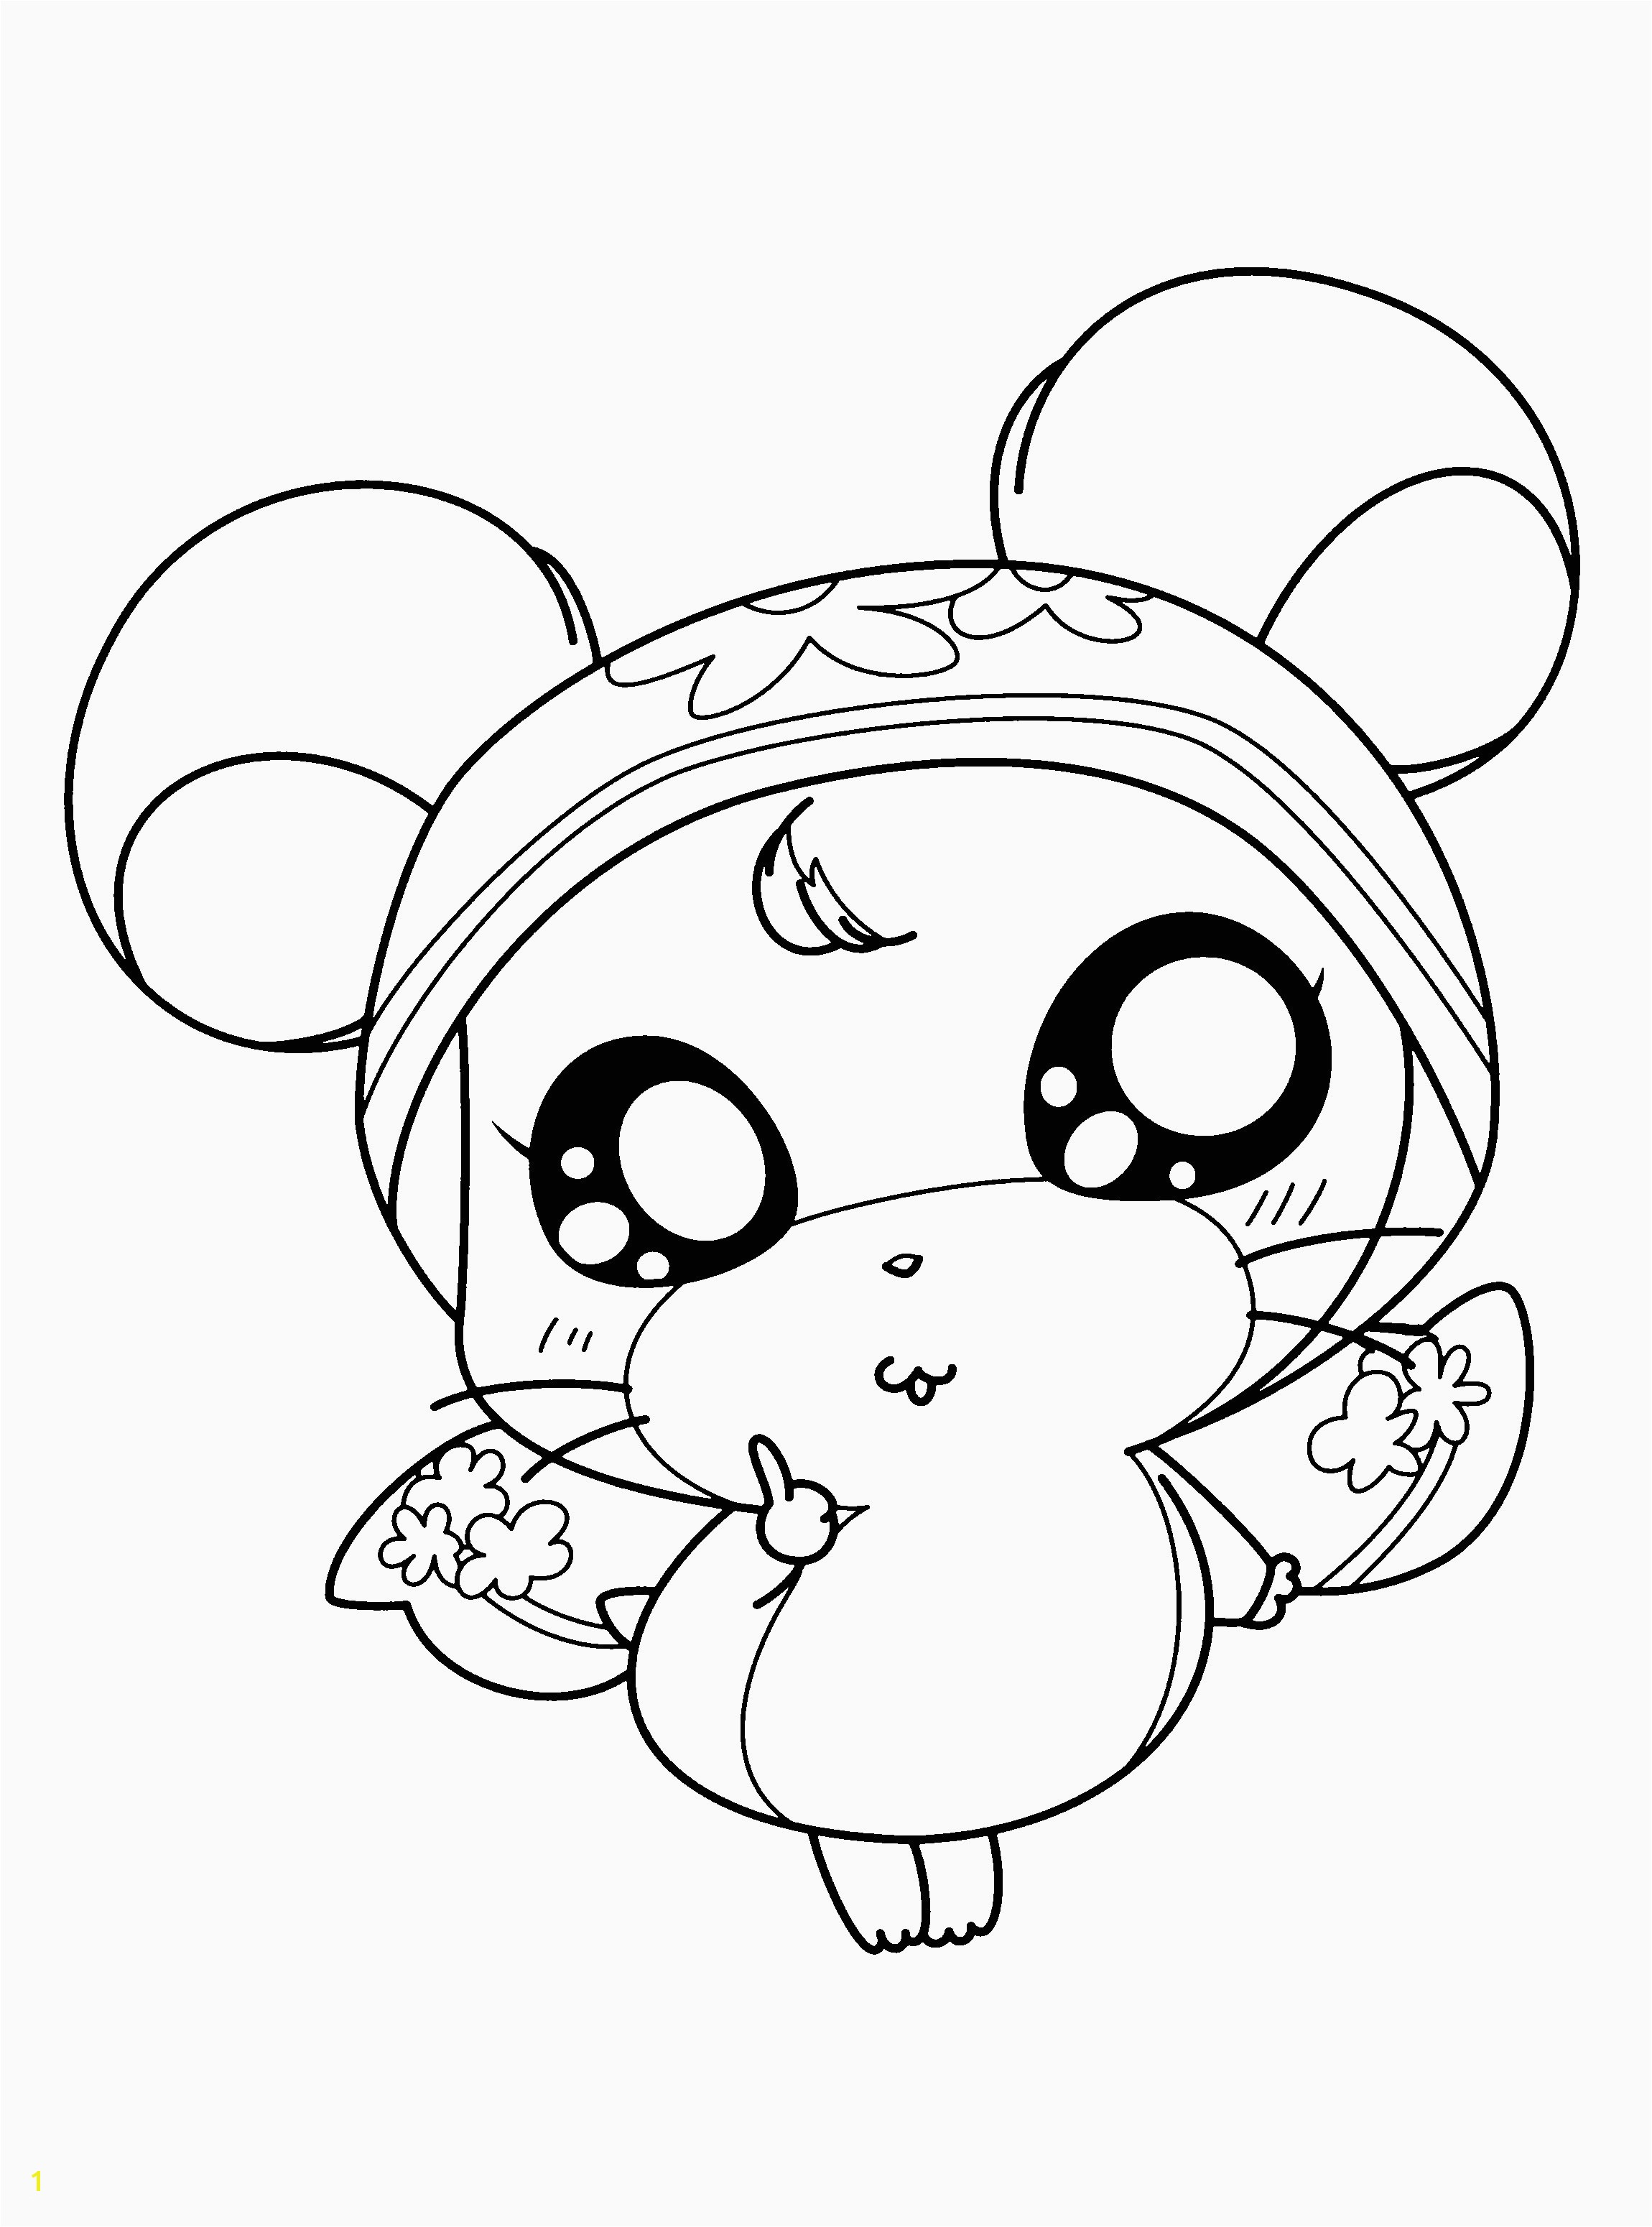 Cute Cartoon Puppy Coloring Pages Puppy Coloring Pages Coloring Pages